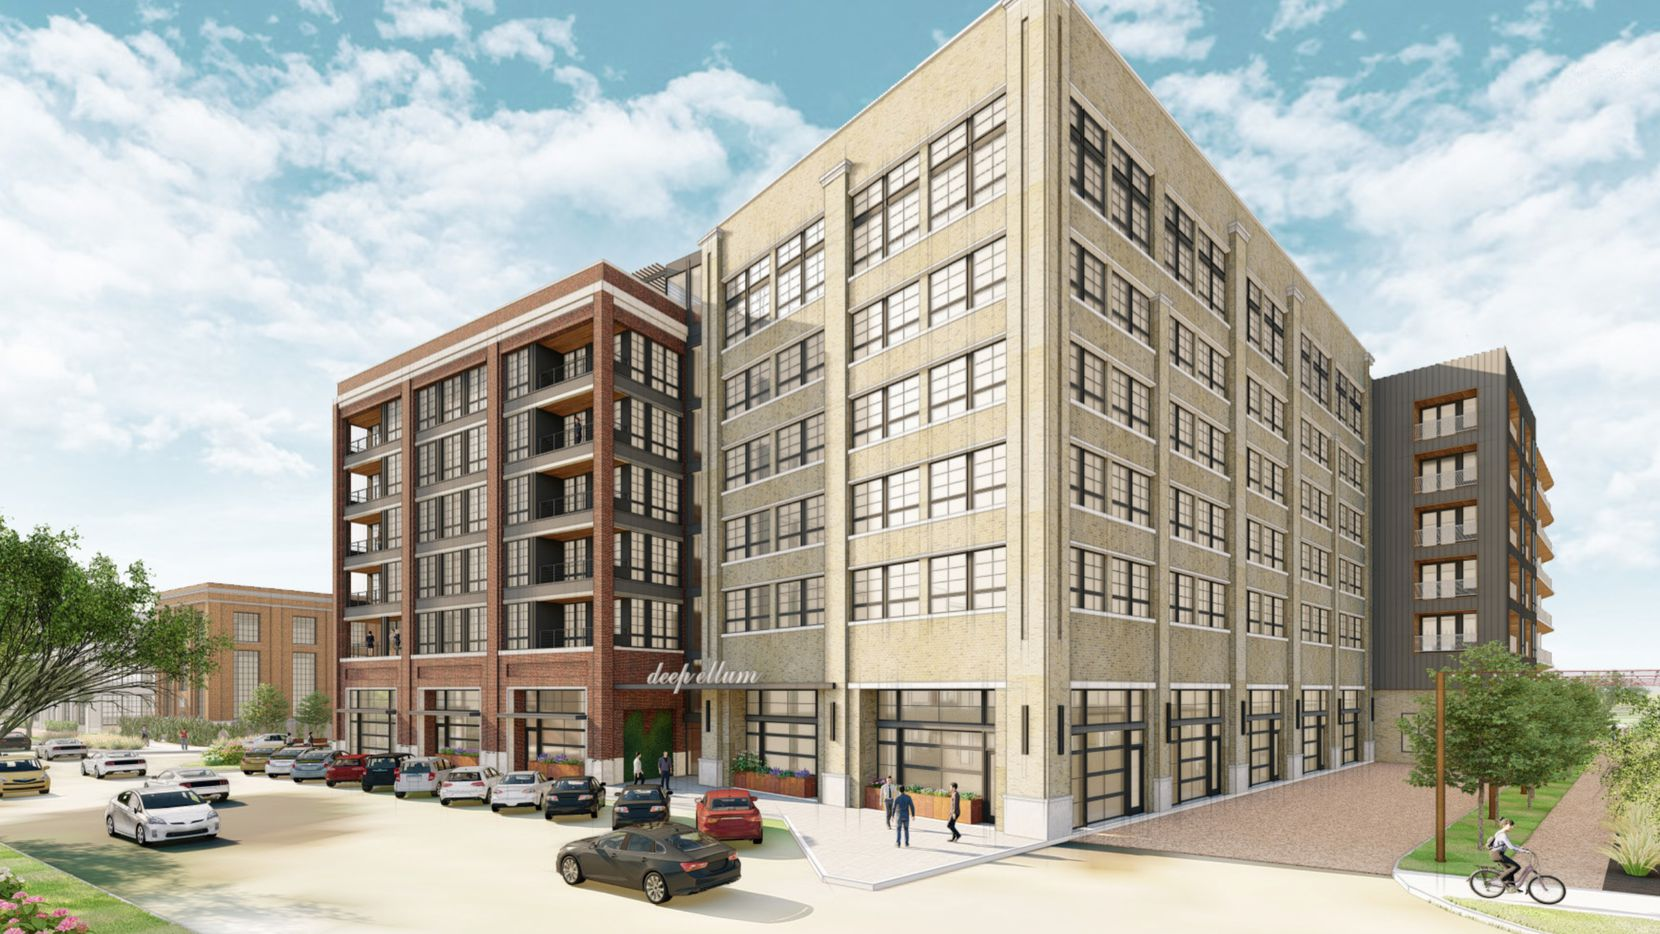 The Willow building will have 190 apartments.